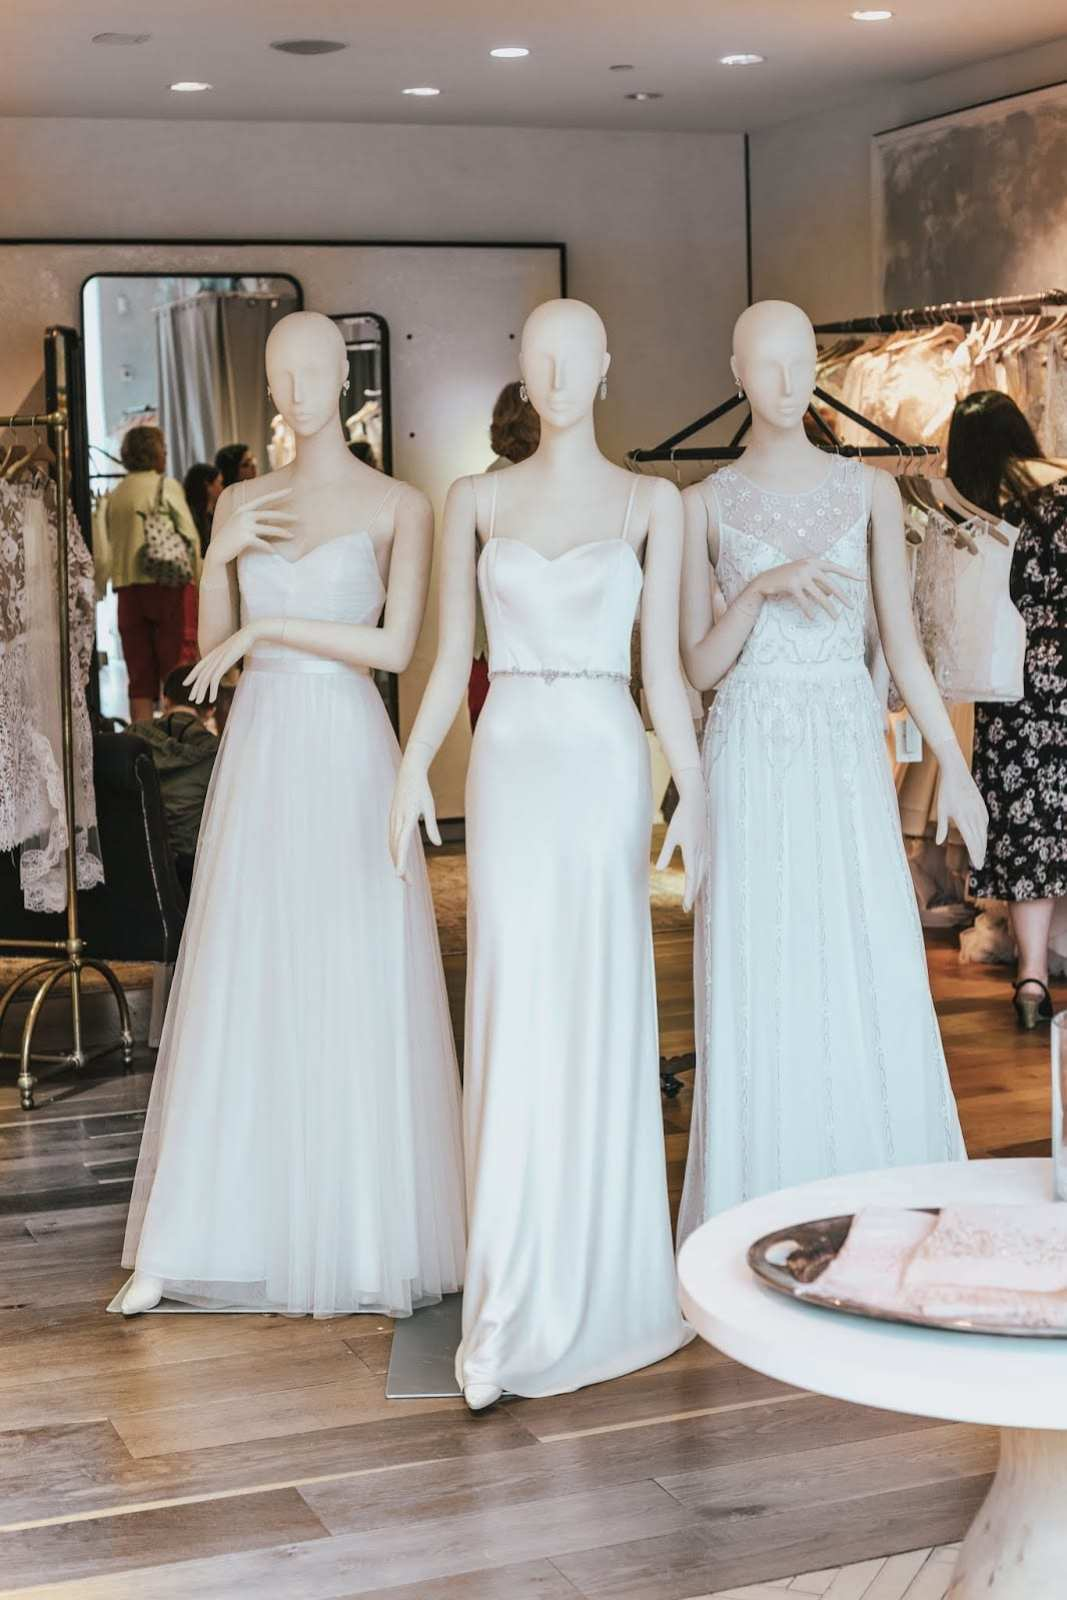 934aaa1d2623 8 Tips for Stress-Free Wedding Dress Shopping - Katy Dee & Co